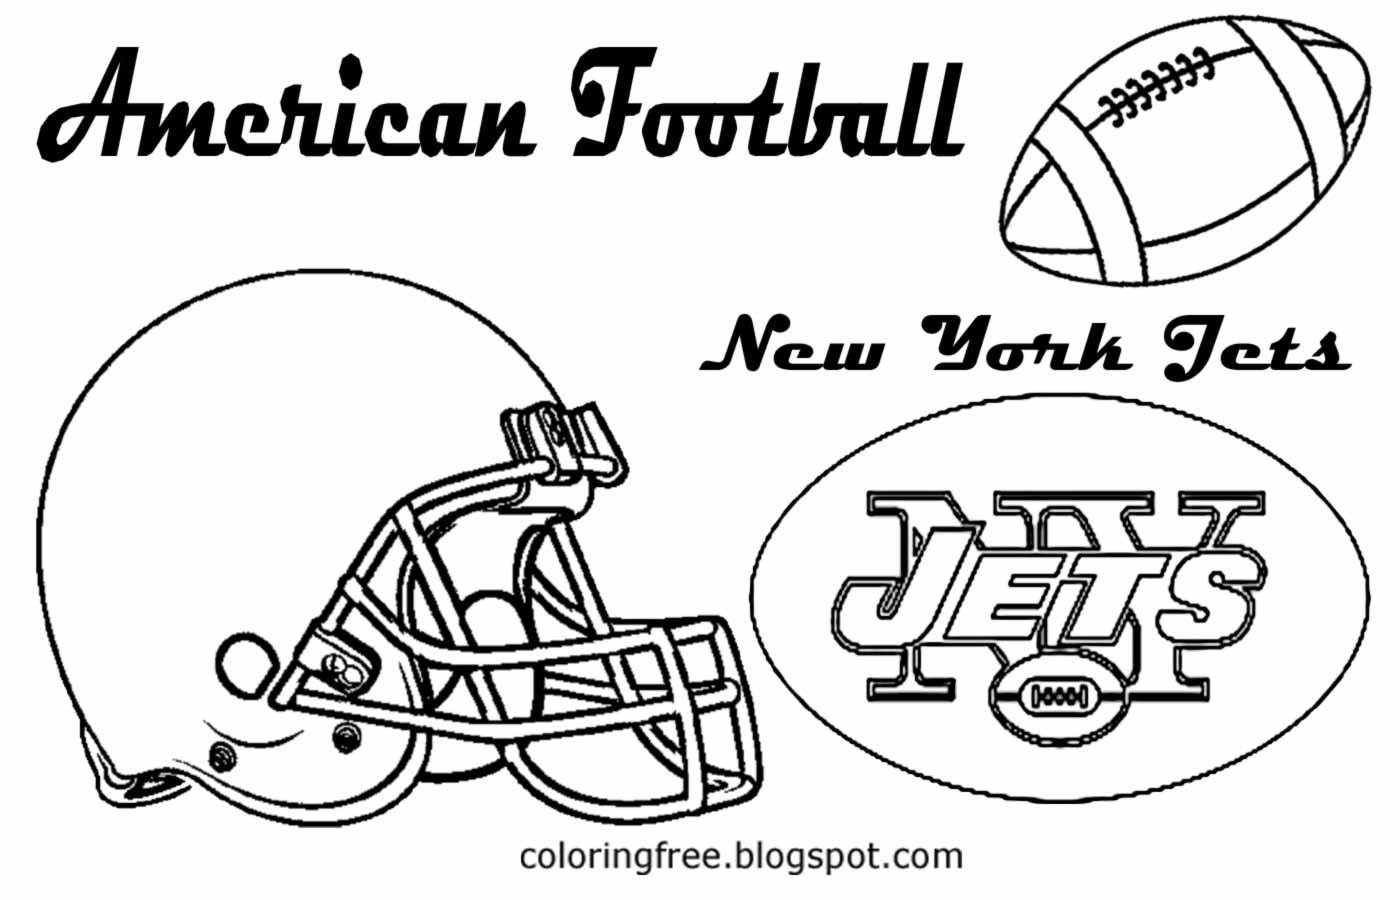 football team coloring pages free coloring pages printable pictures to color kids pages coloring football team